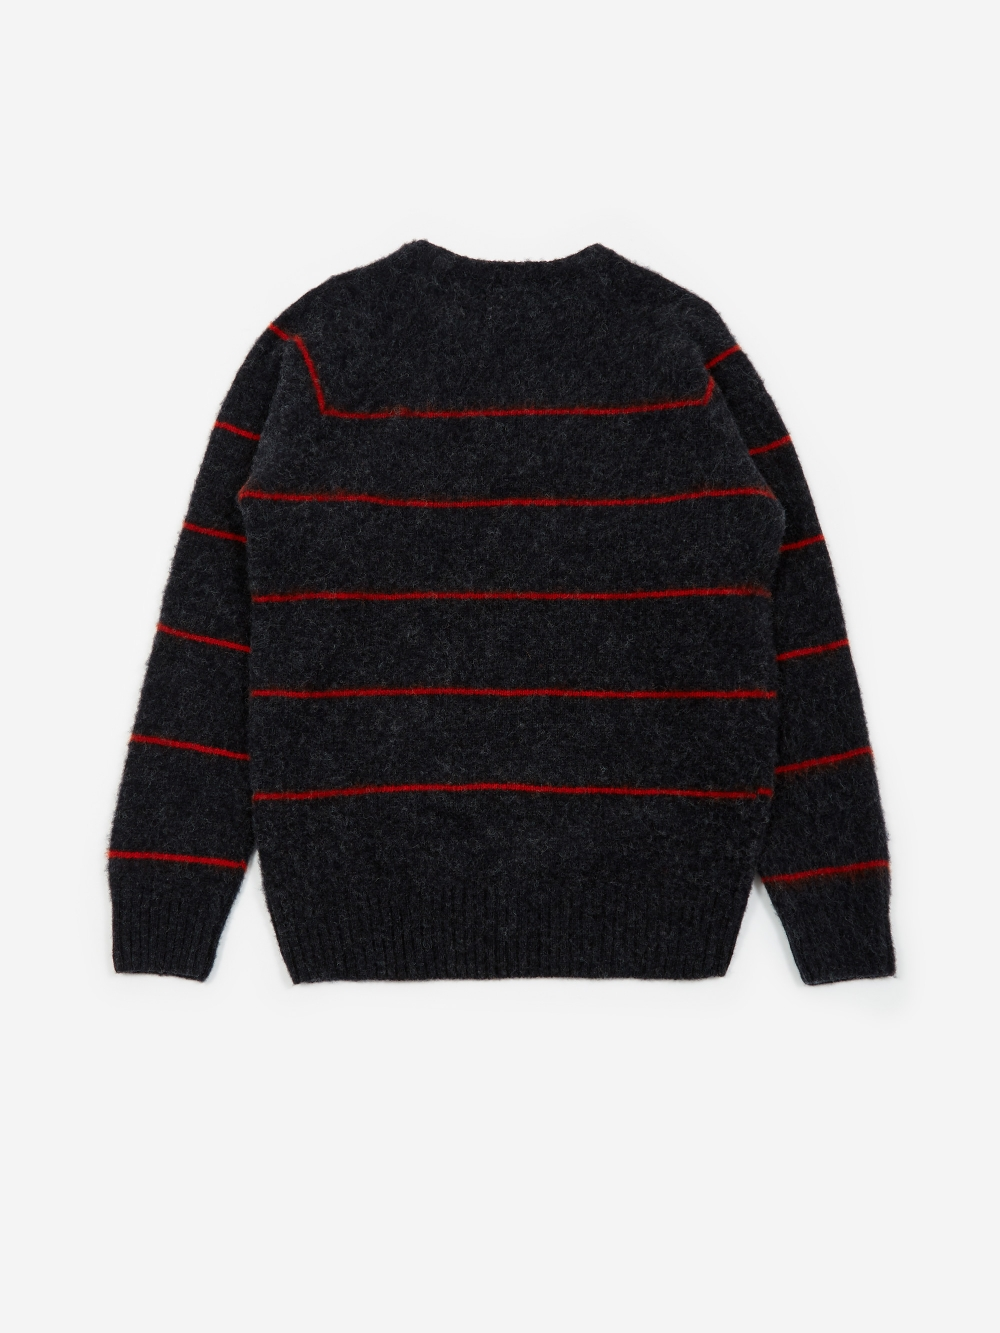 Ymc Jamc Crewneck Sweater Charcoal